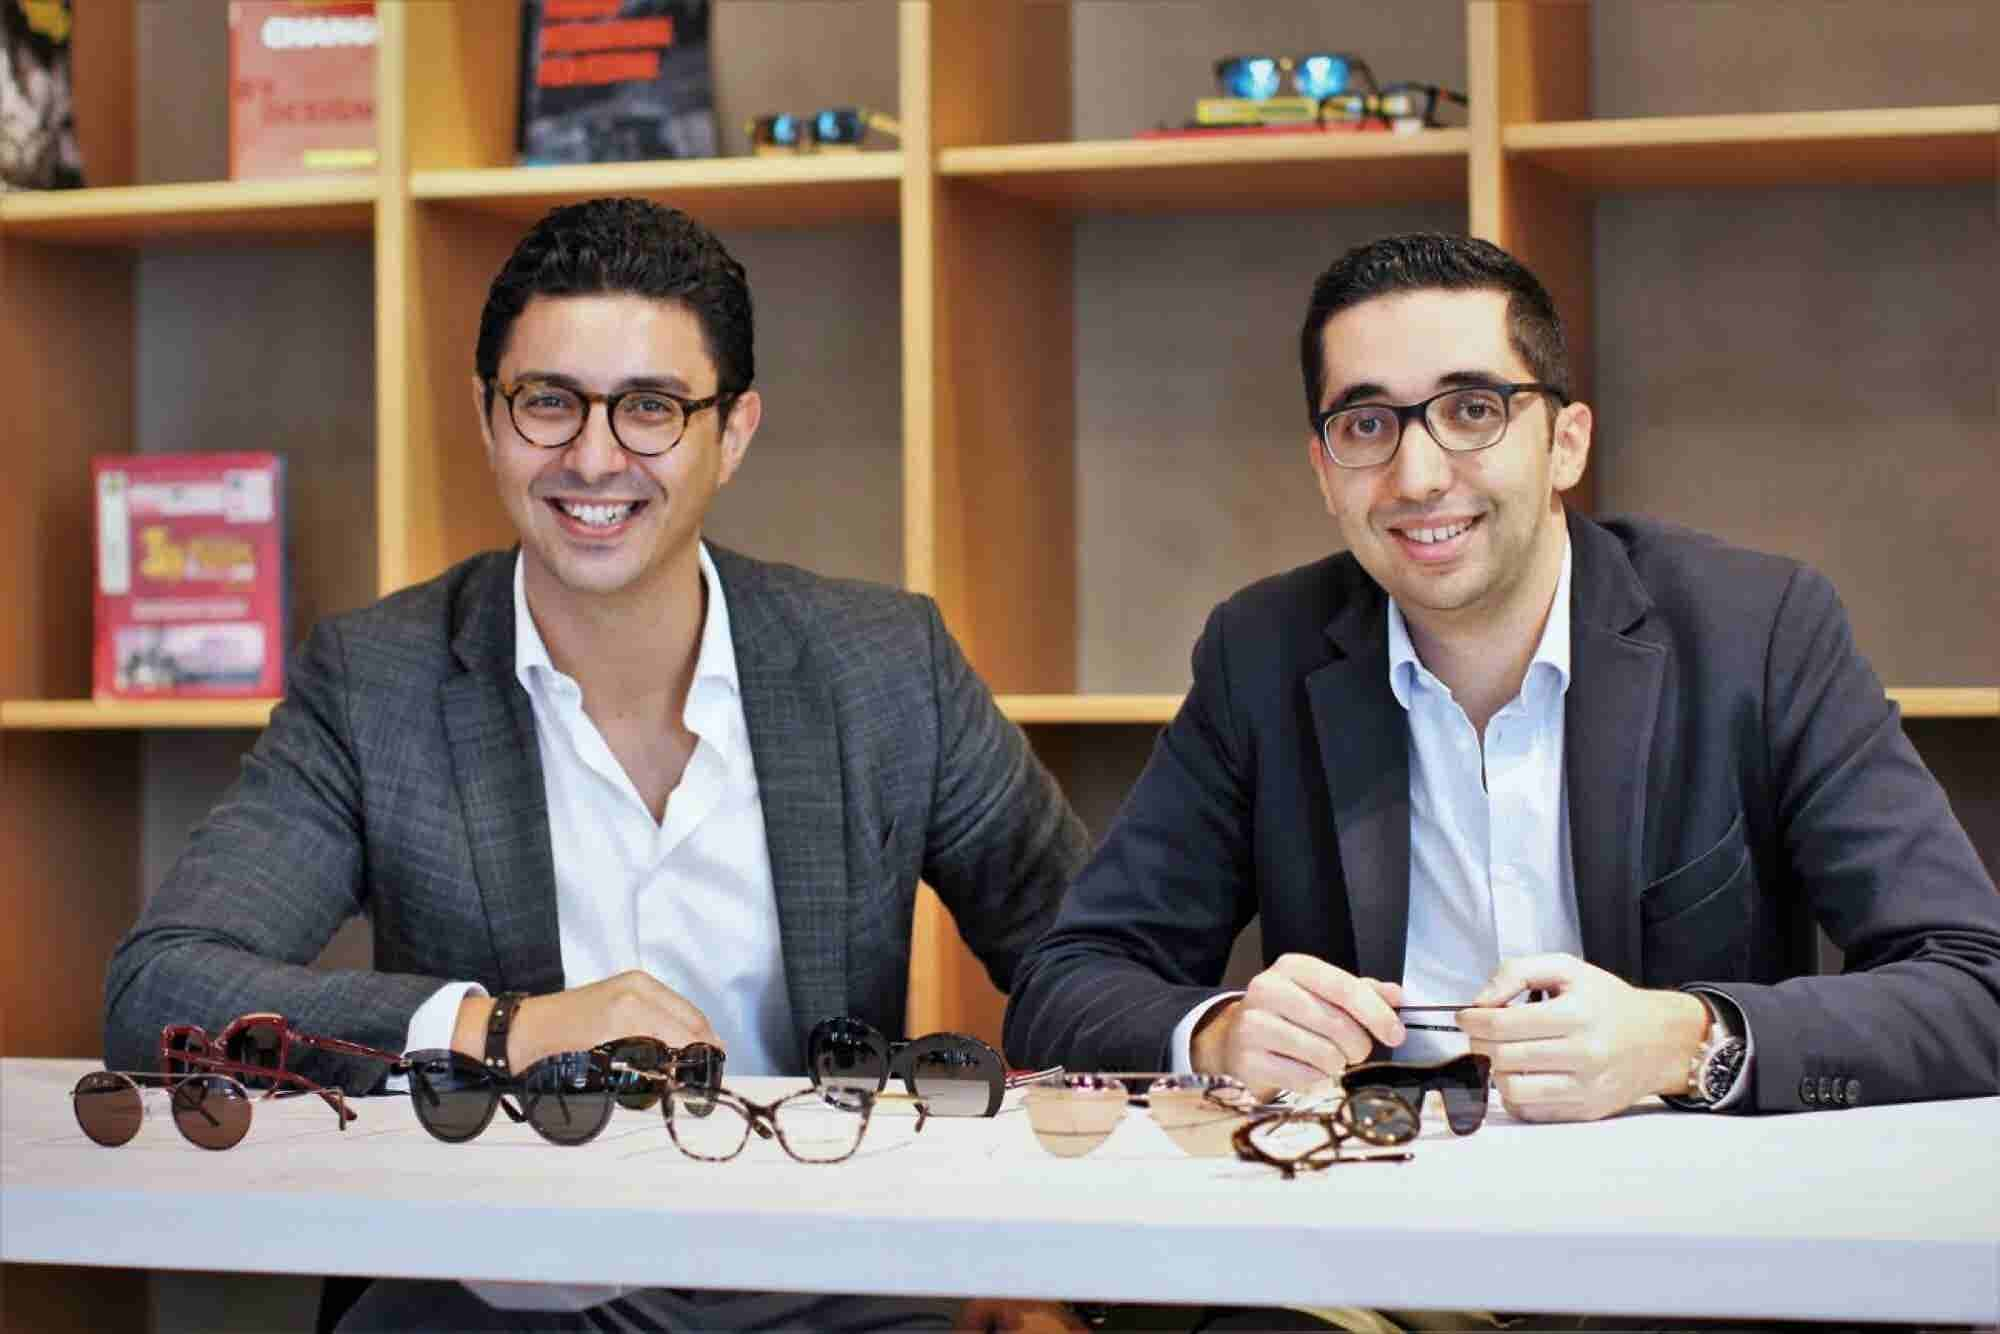 Dubai-Headquartered E-Commerce Platform Eyewa Raises US$1.1 Million From UAE And KSA Investors